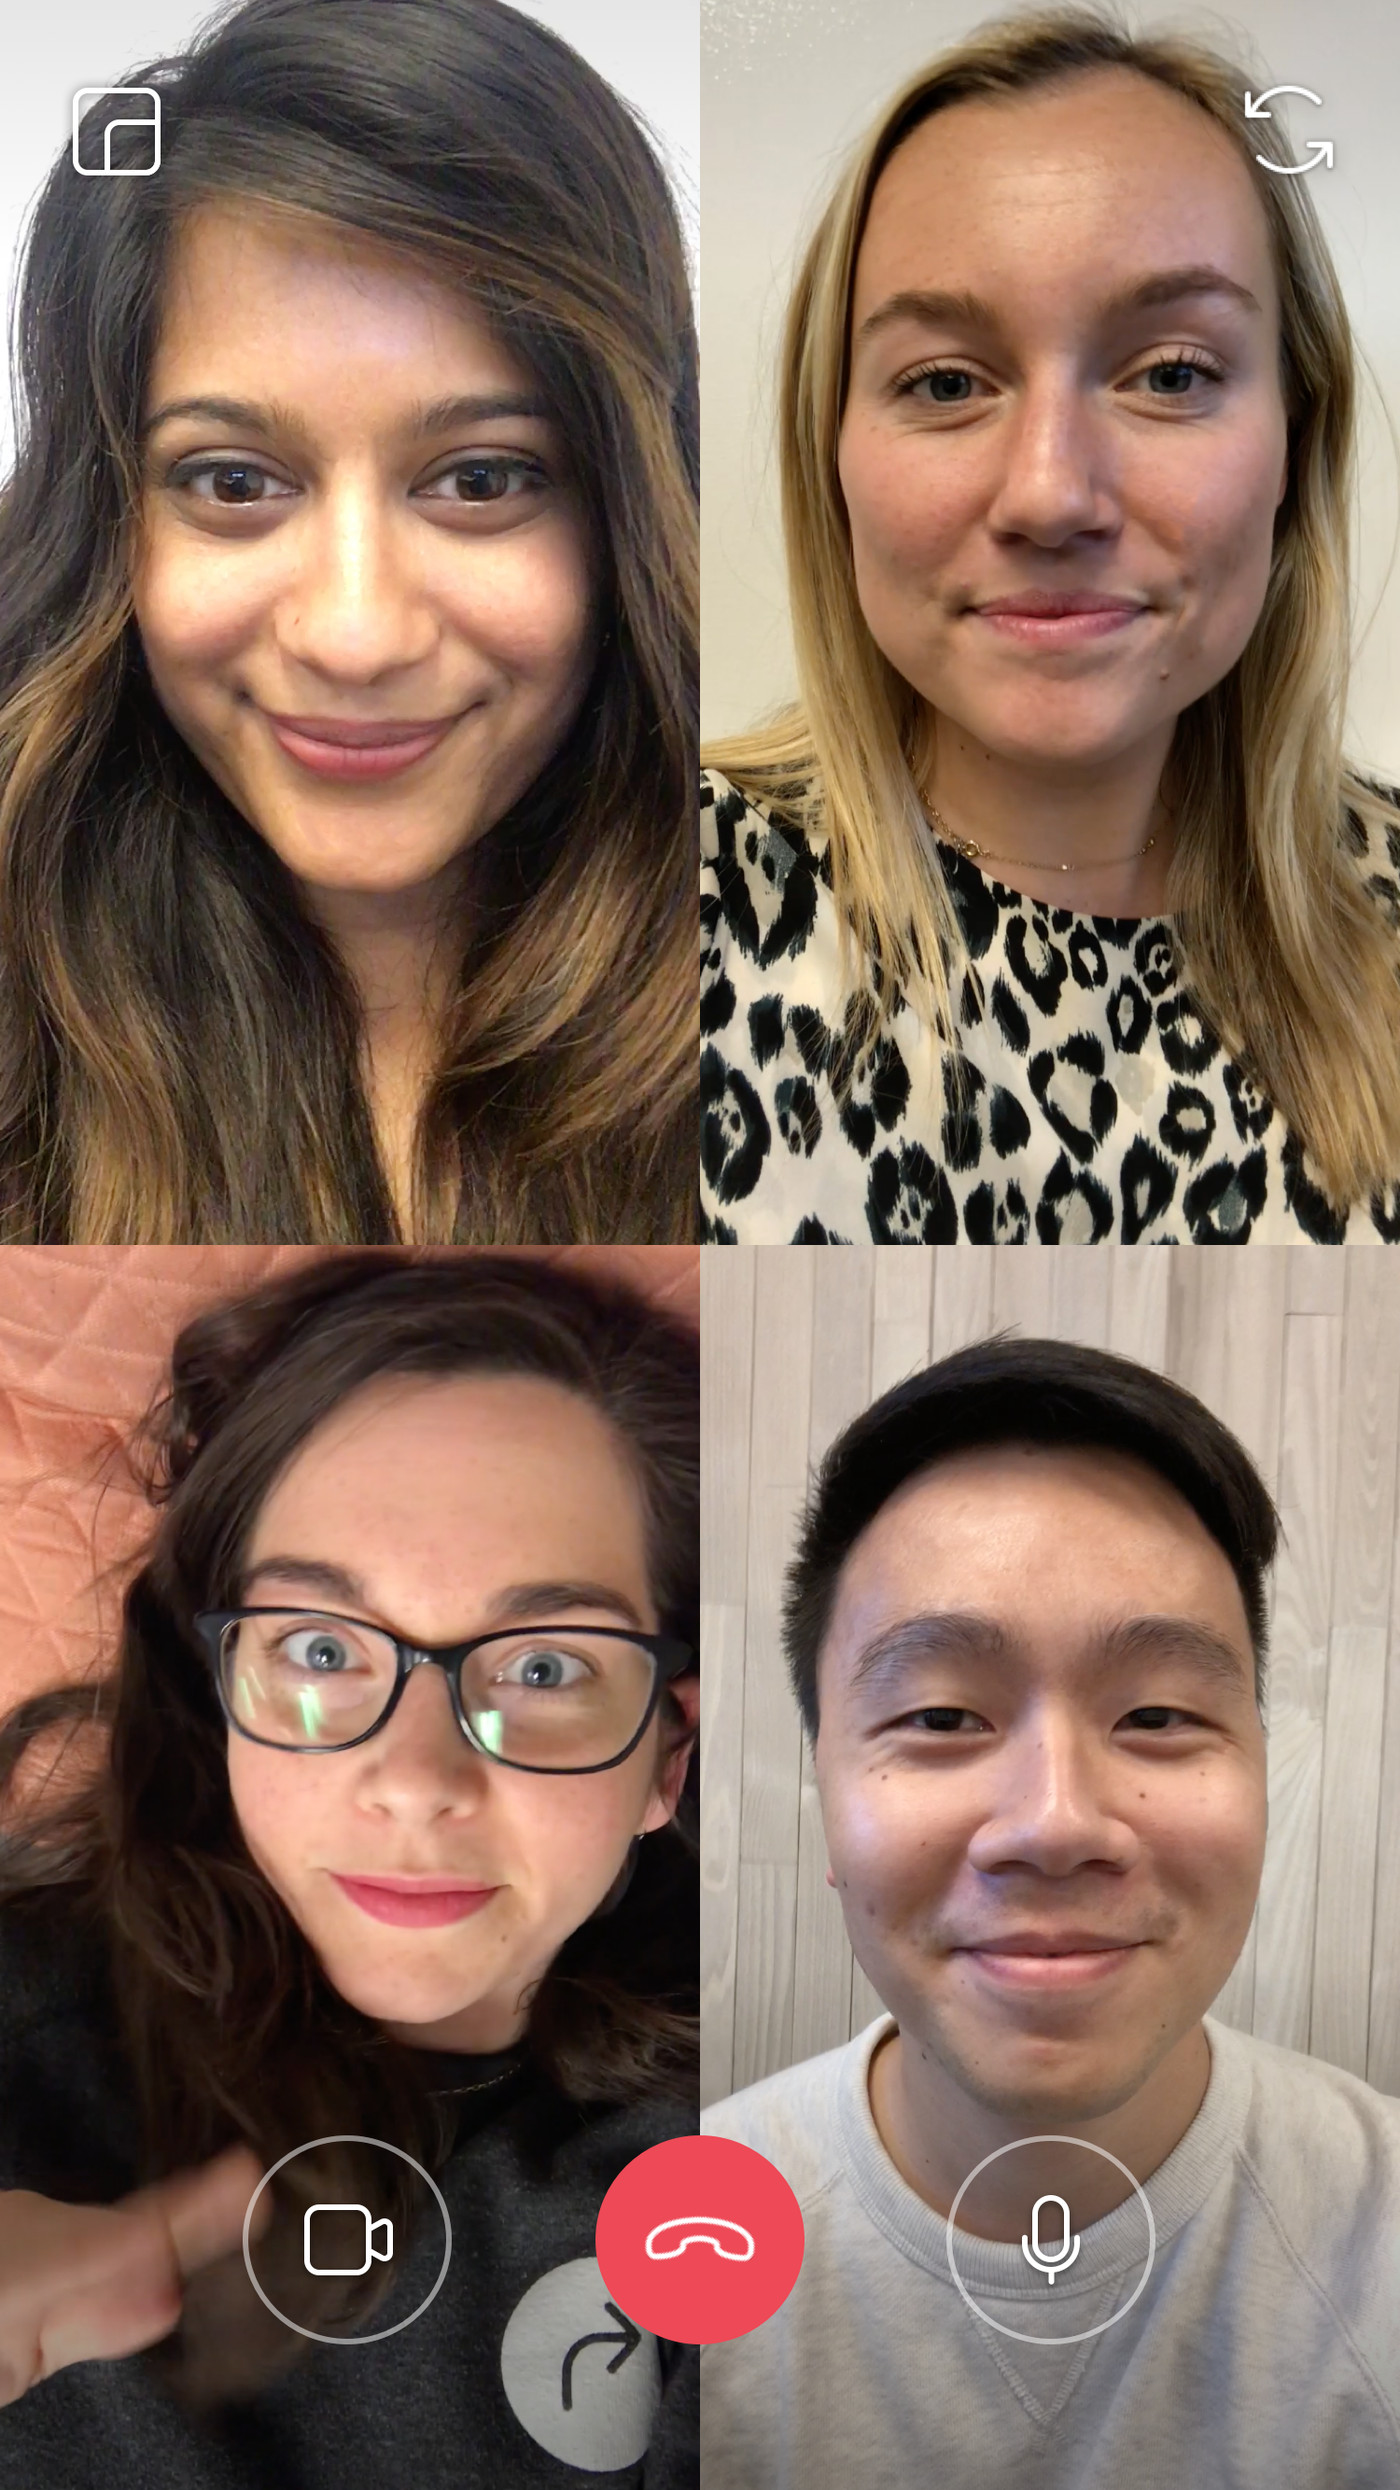 Video calls are coming to Instagram - The Verge